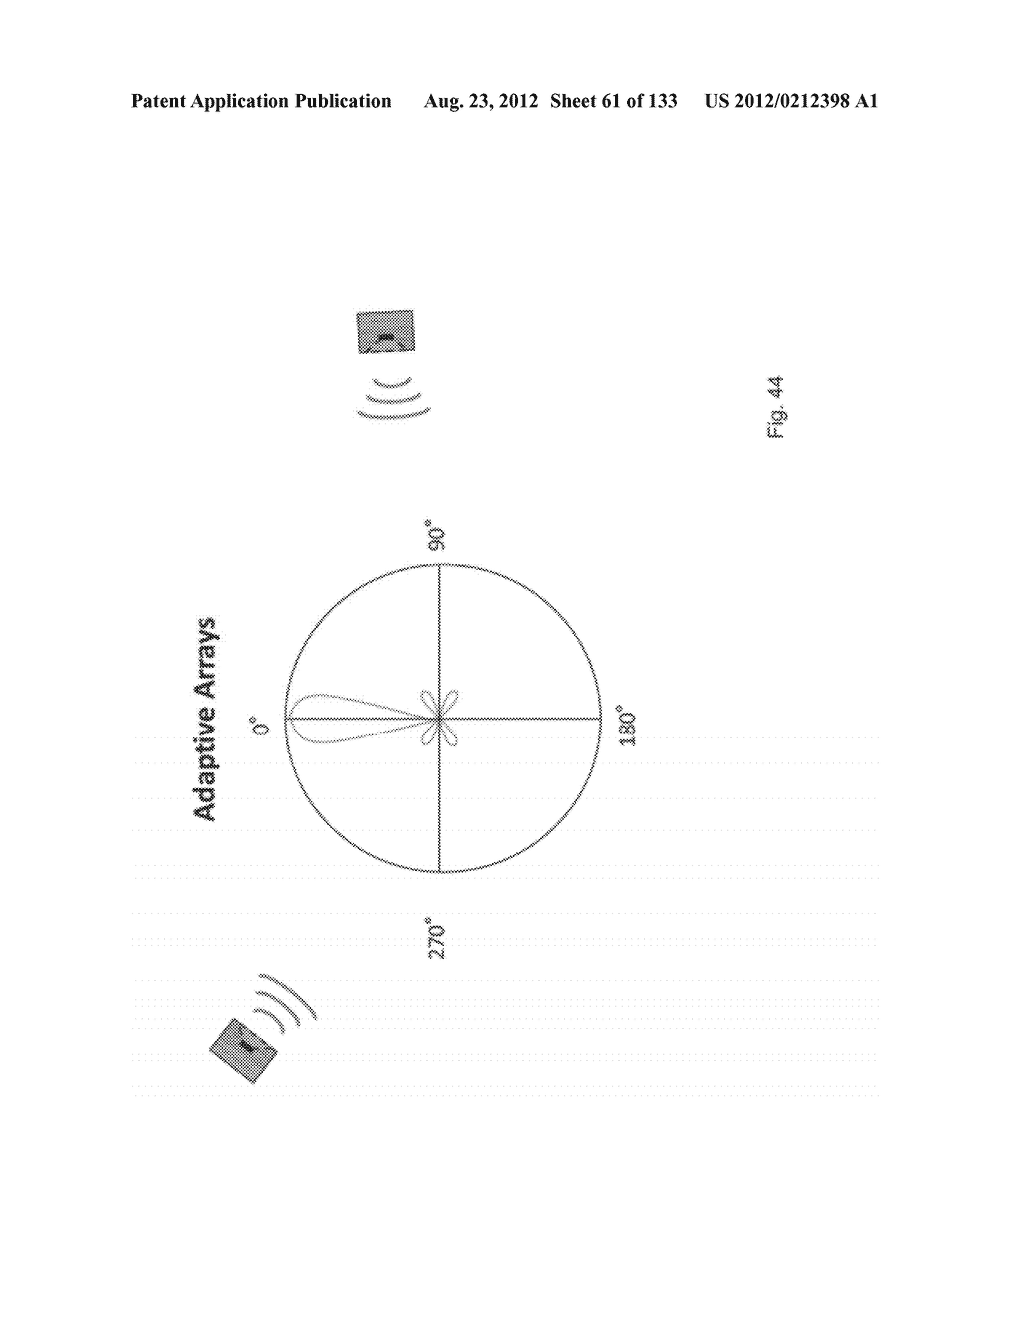 SEE-THROUGH NEAR-EYE DISPLAY GLASSES INCLUDING A PARTIALLY REFLECTIVE,     PARTIALLY TRANSMITTING OPTICAL ELEMENT - diagram, schematic, and image 62